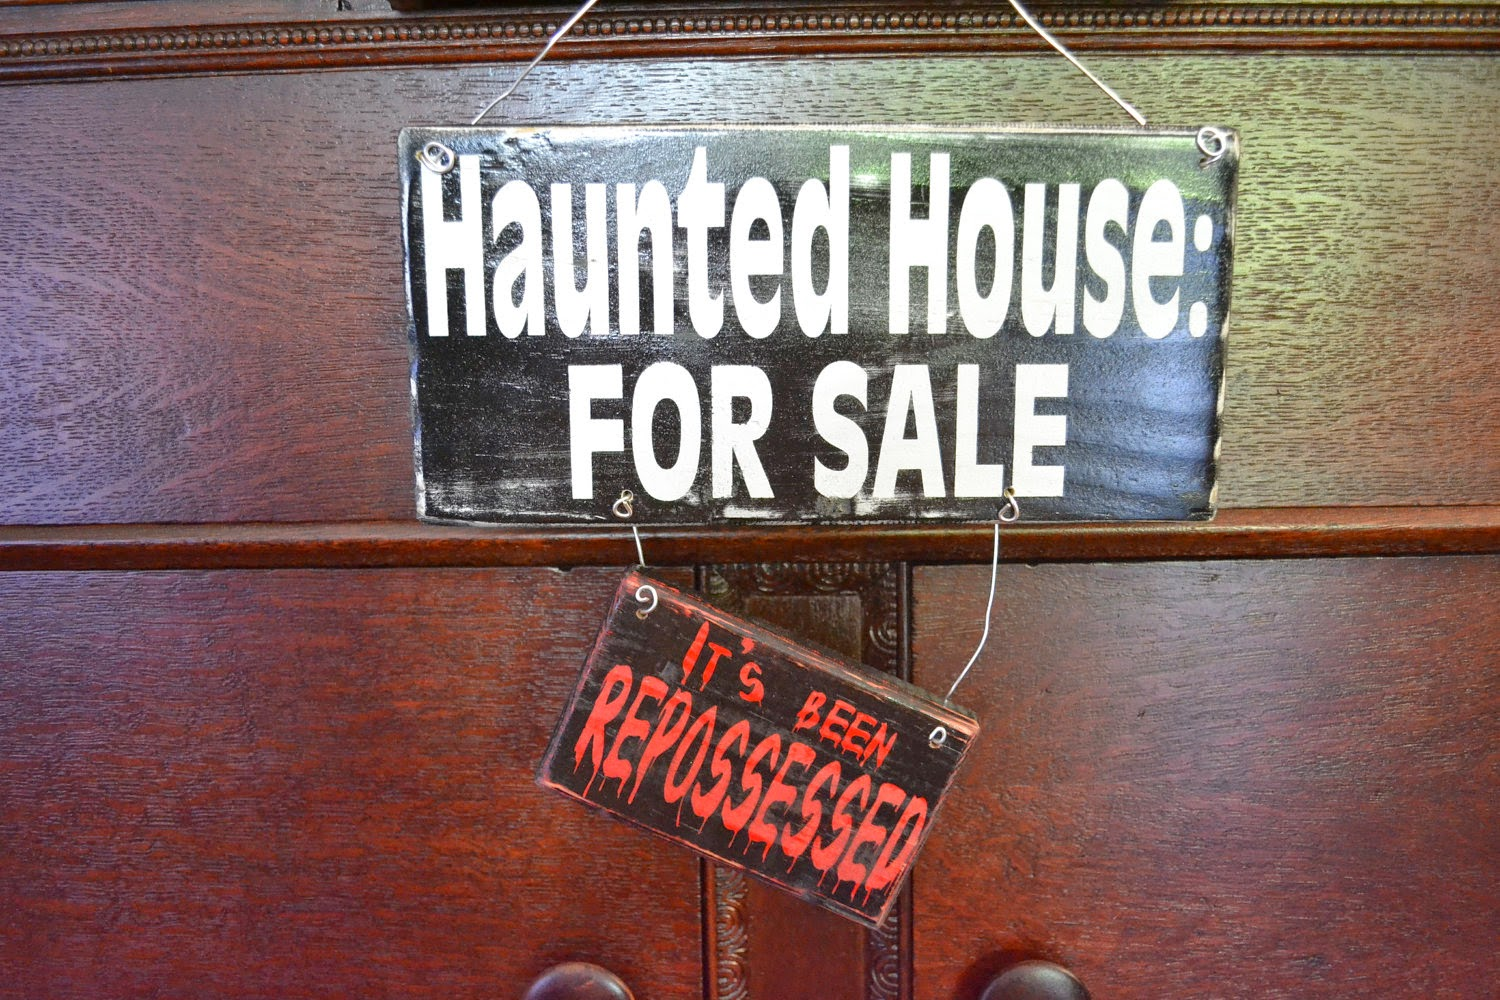 how to find haunted houses for sale